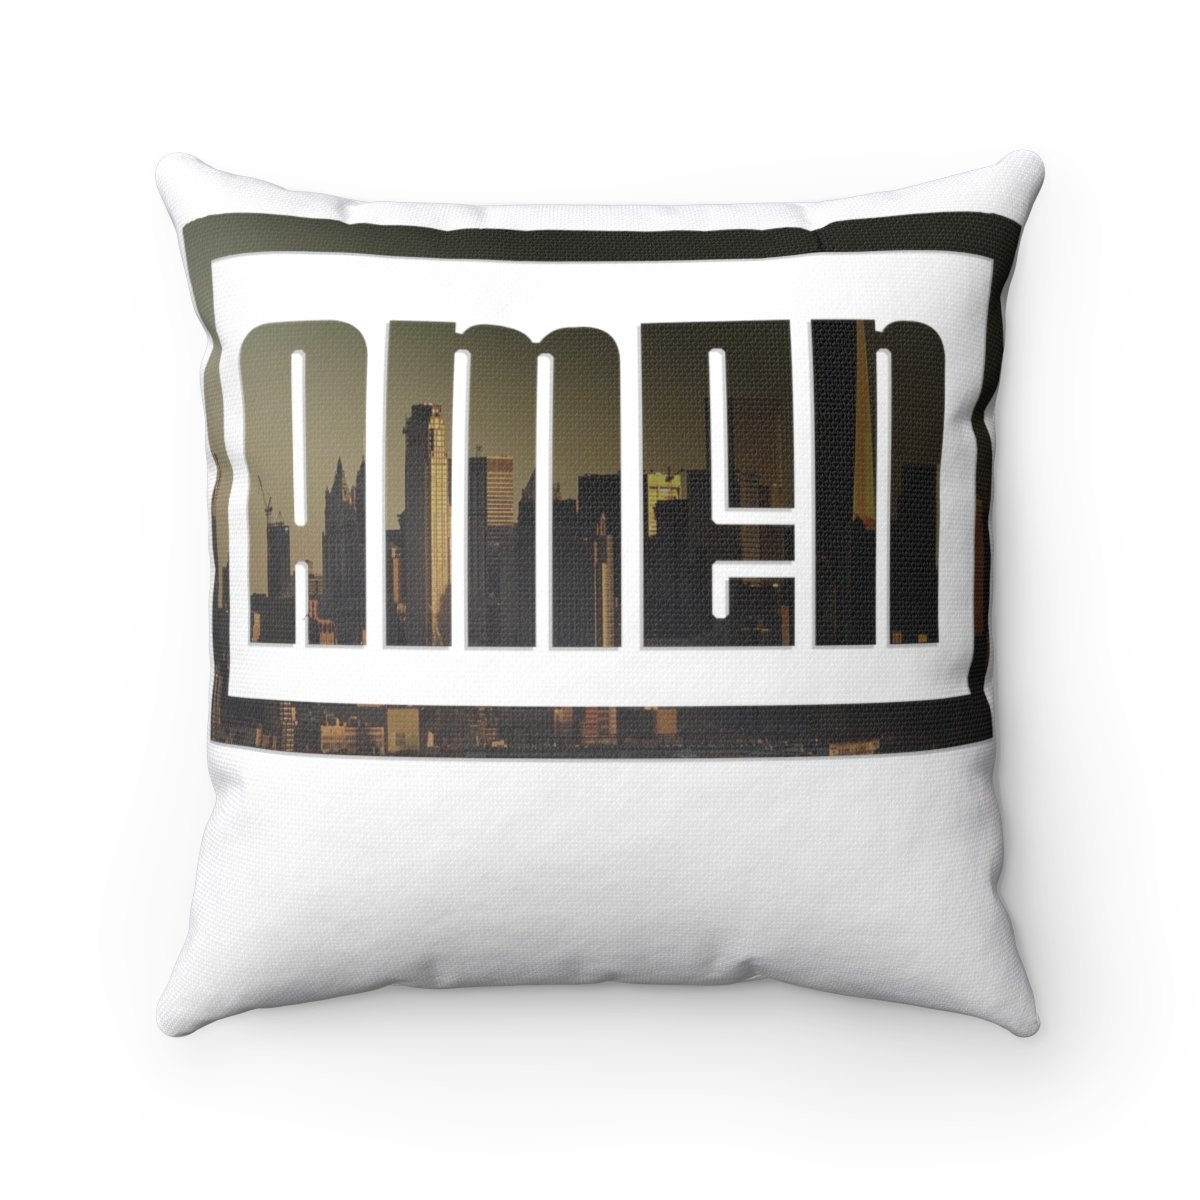 Amen (Spun Polyester Square Pillow)